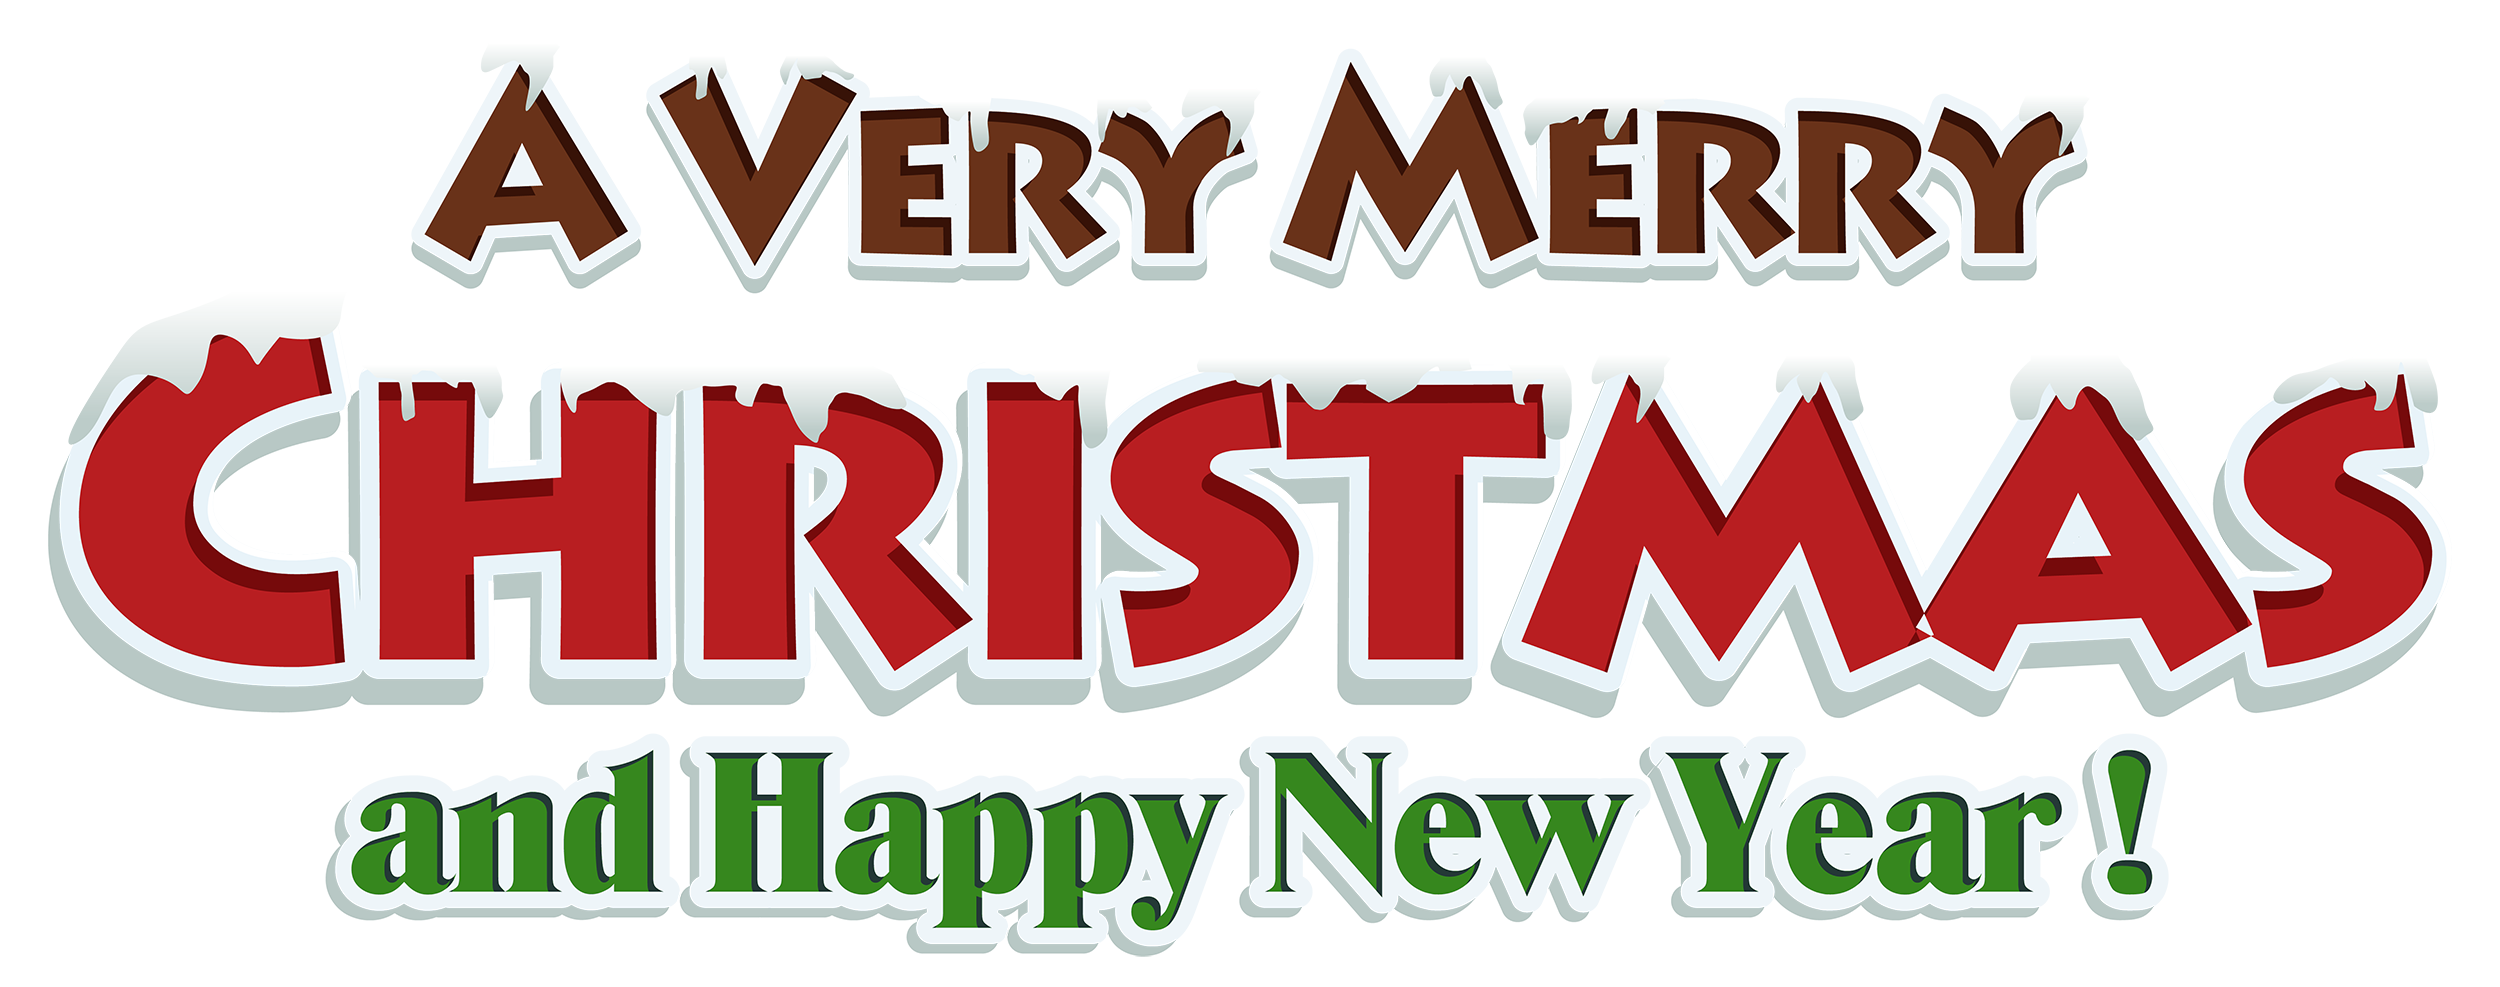 Merry Christmas Text PNG - 16073